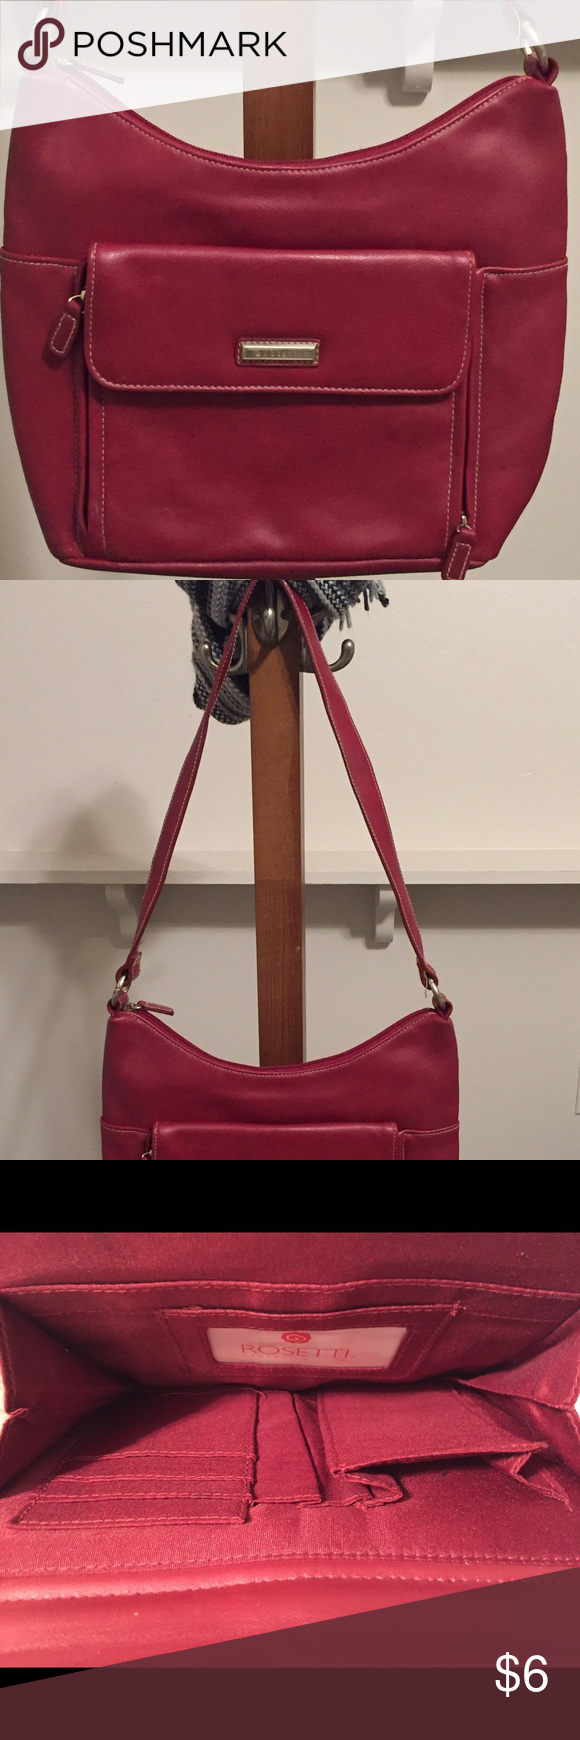 NWOT Rosetti Crossbody Purse w/ lots of room etc. NWOT Rosetti Crossbody Purse with several compartments and space for whatever Rosetti Bags Crossbody Bags